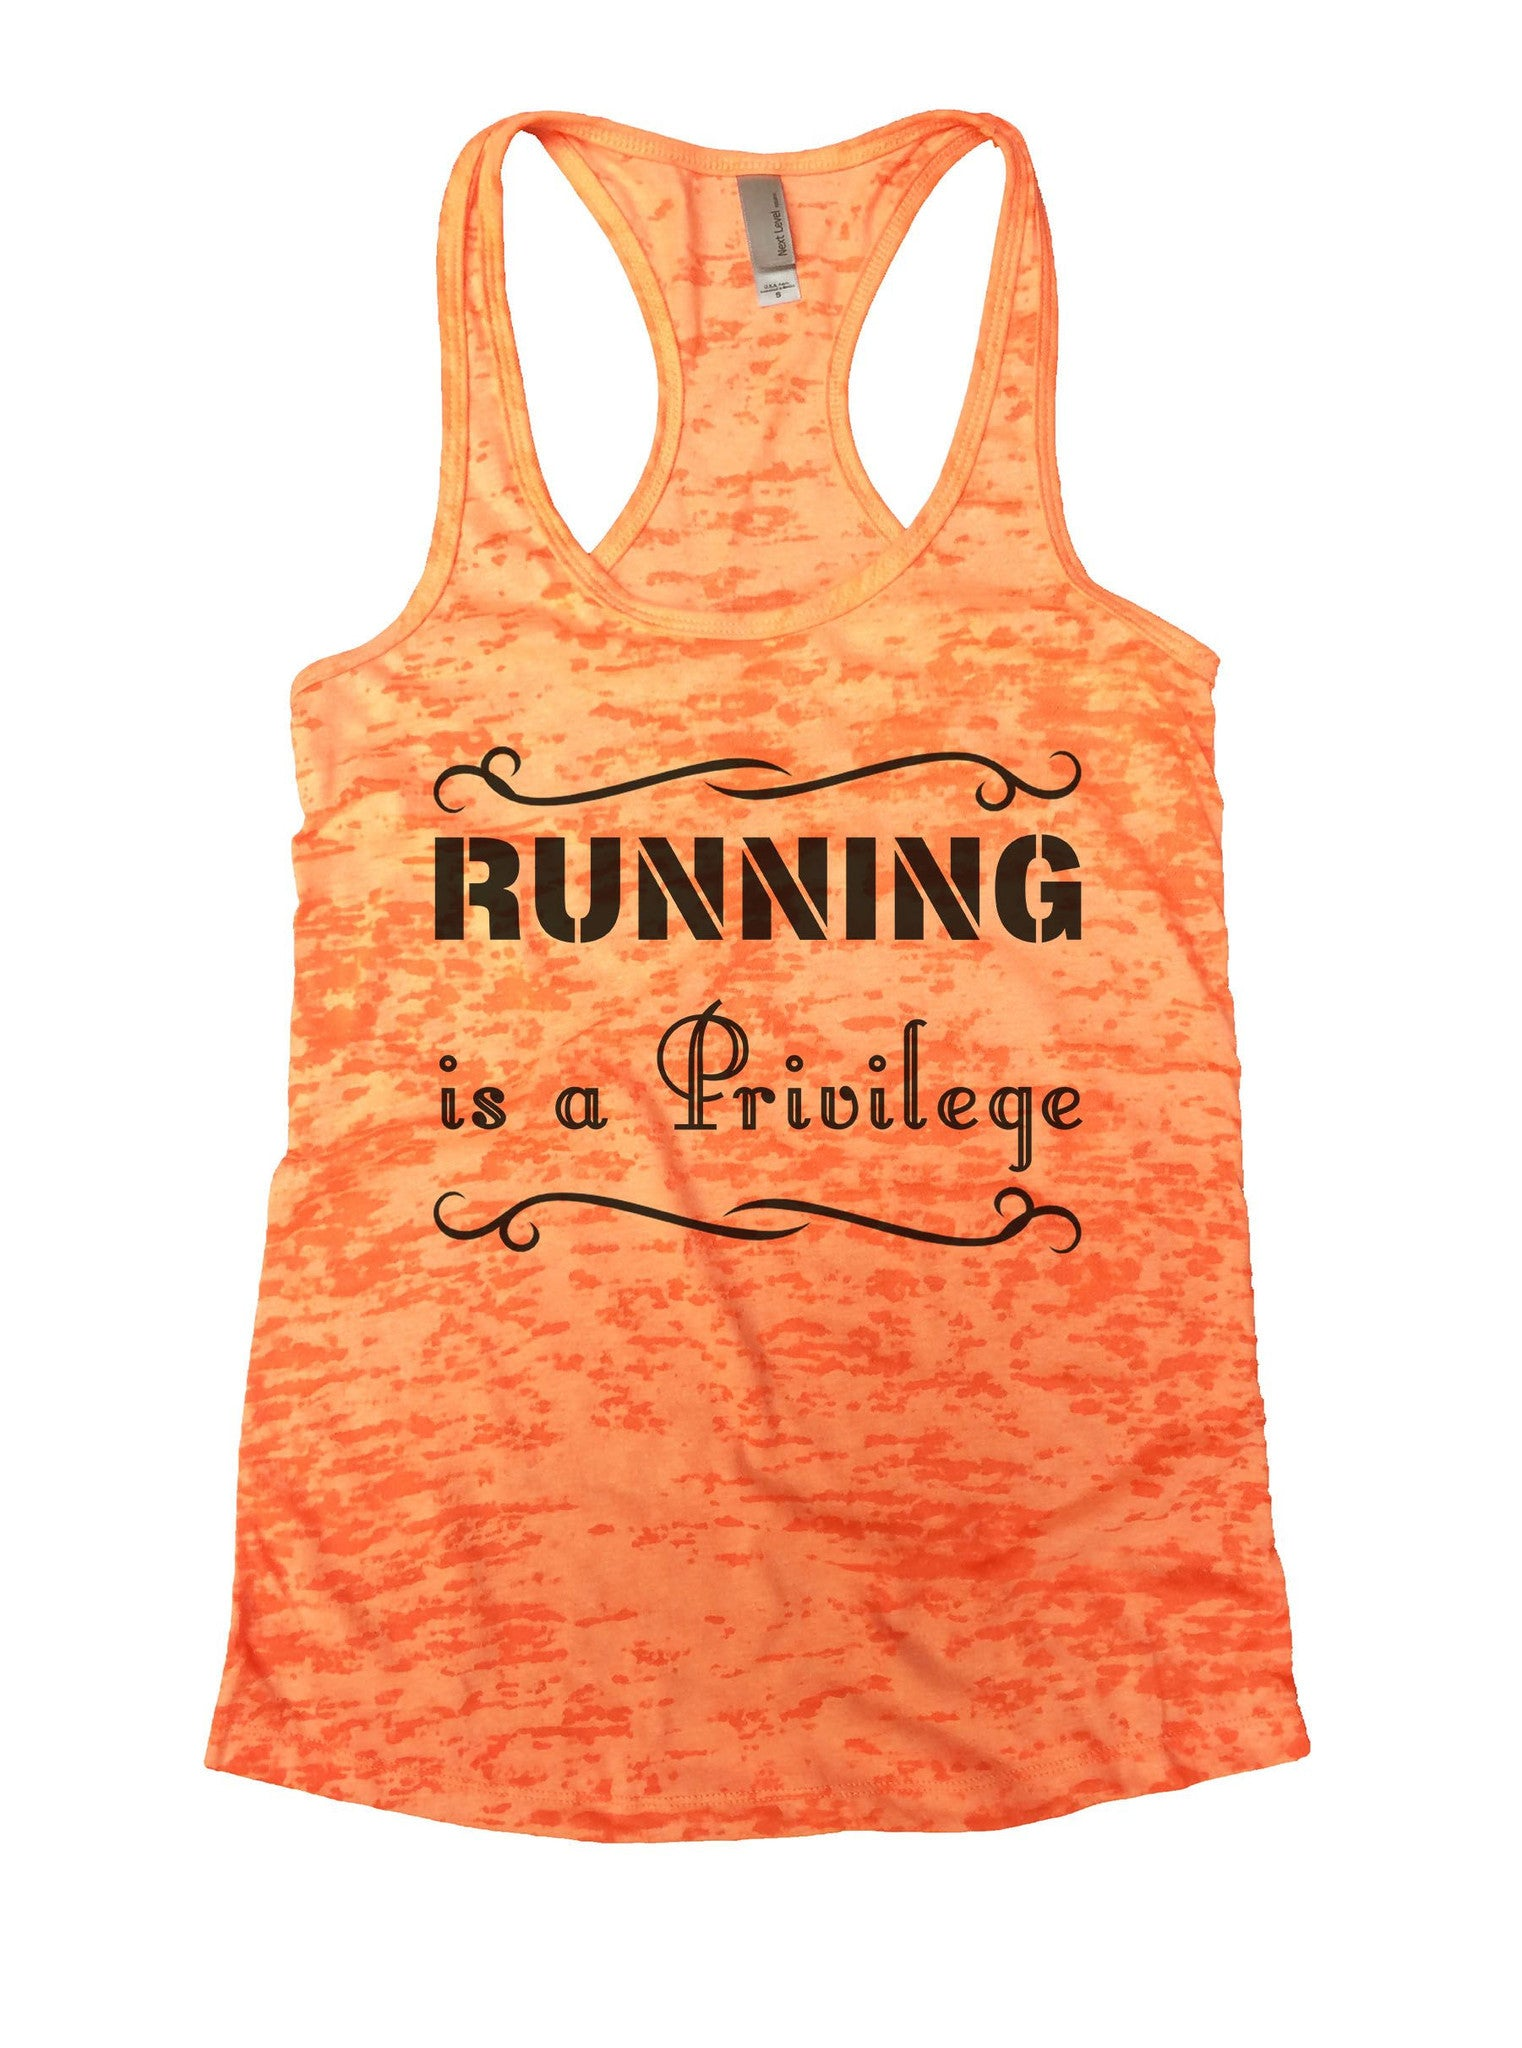 Running Is A Privilege Burnout Tank Top By BurnoutTankTops.com - 885 - Funny Shirts Tank Tops Burnouts and Triblends  - 3